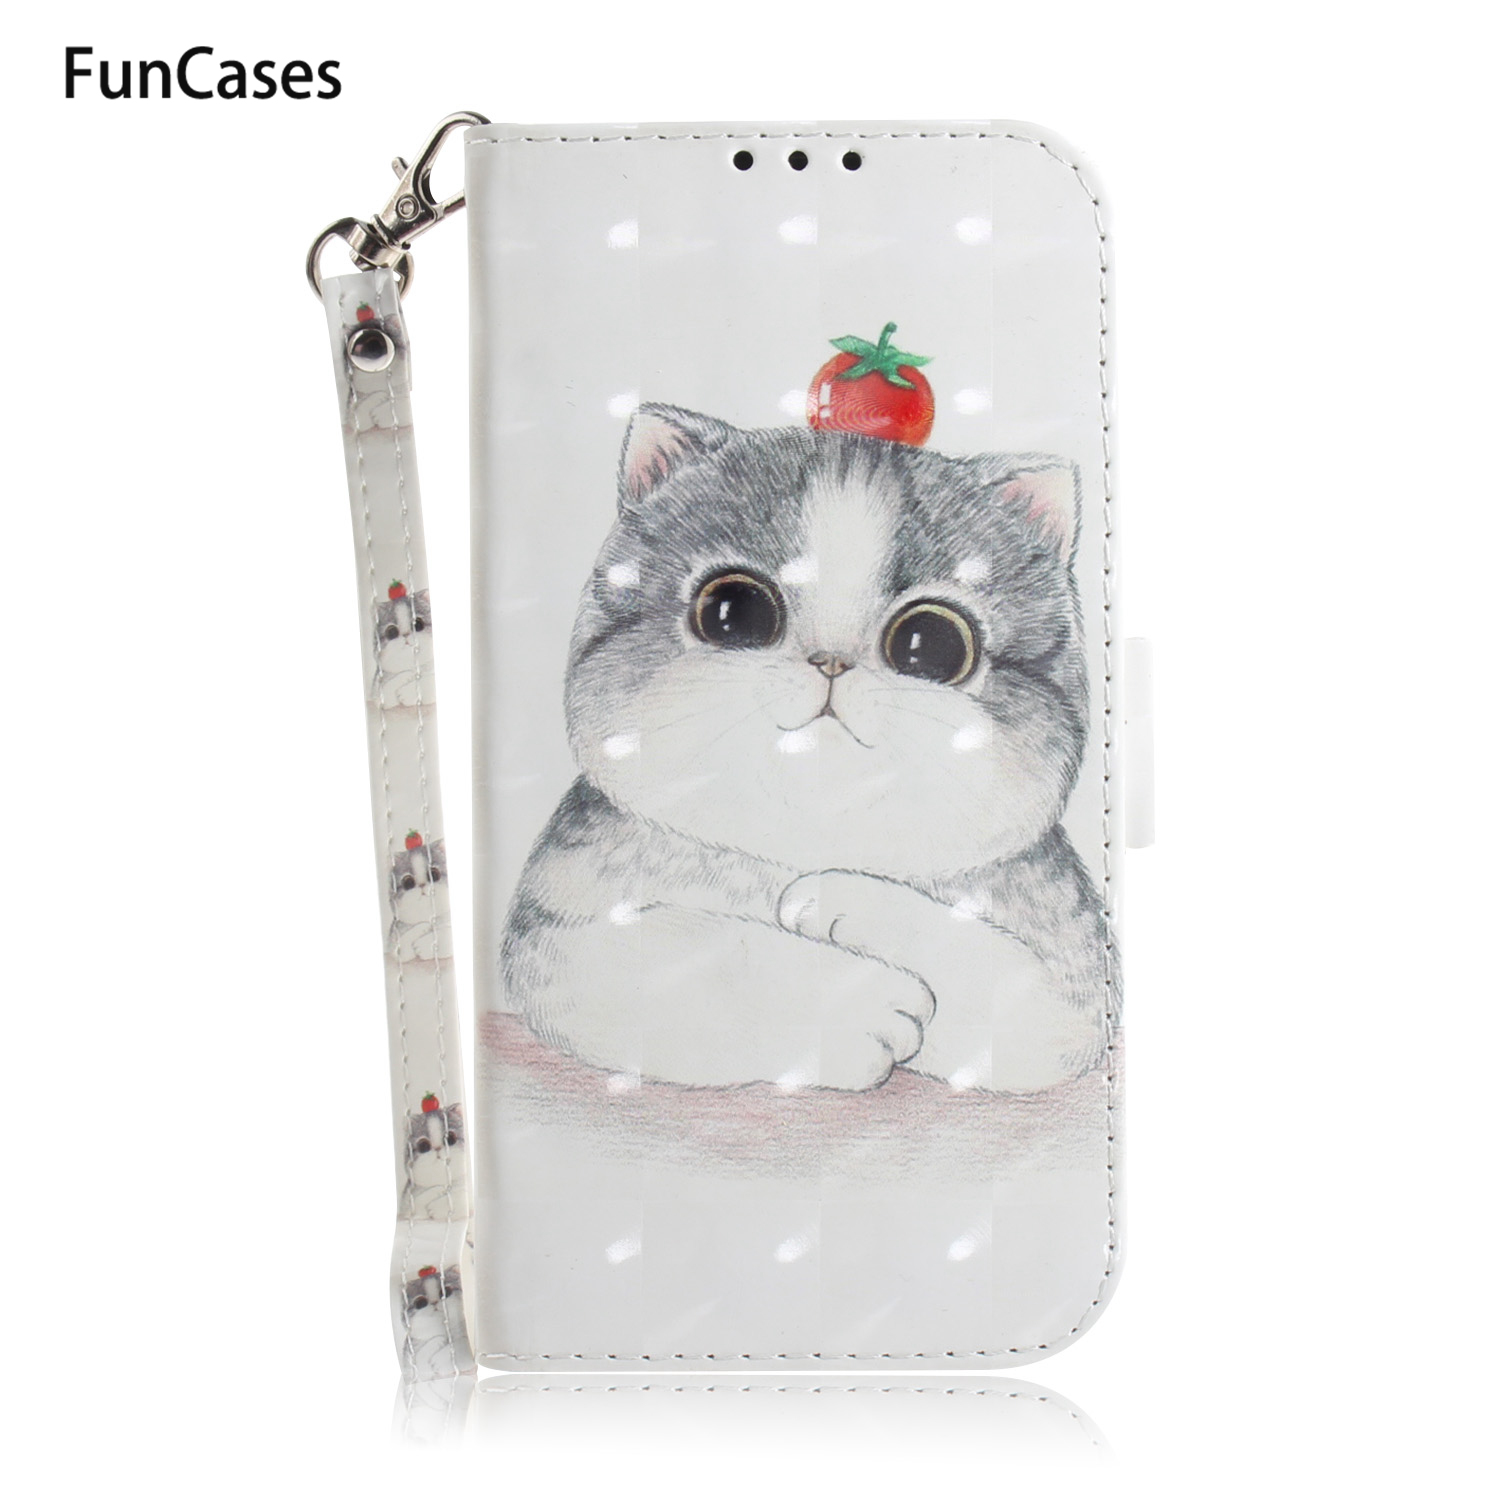 3D Book Phone Case For carcaso Huawei Y6 2018 PU Leather Wallet Case sFor Ajax Huawei cellular Honor 7A Y6 Prime 2018 <font><b>Y5</b></font> Y9 <font><b>2019</b></font> image